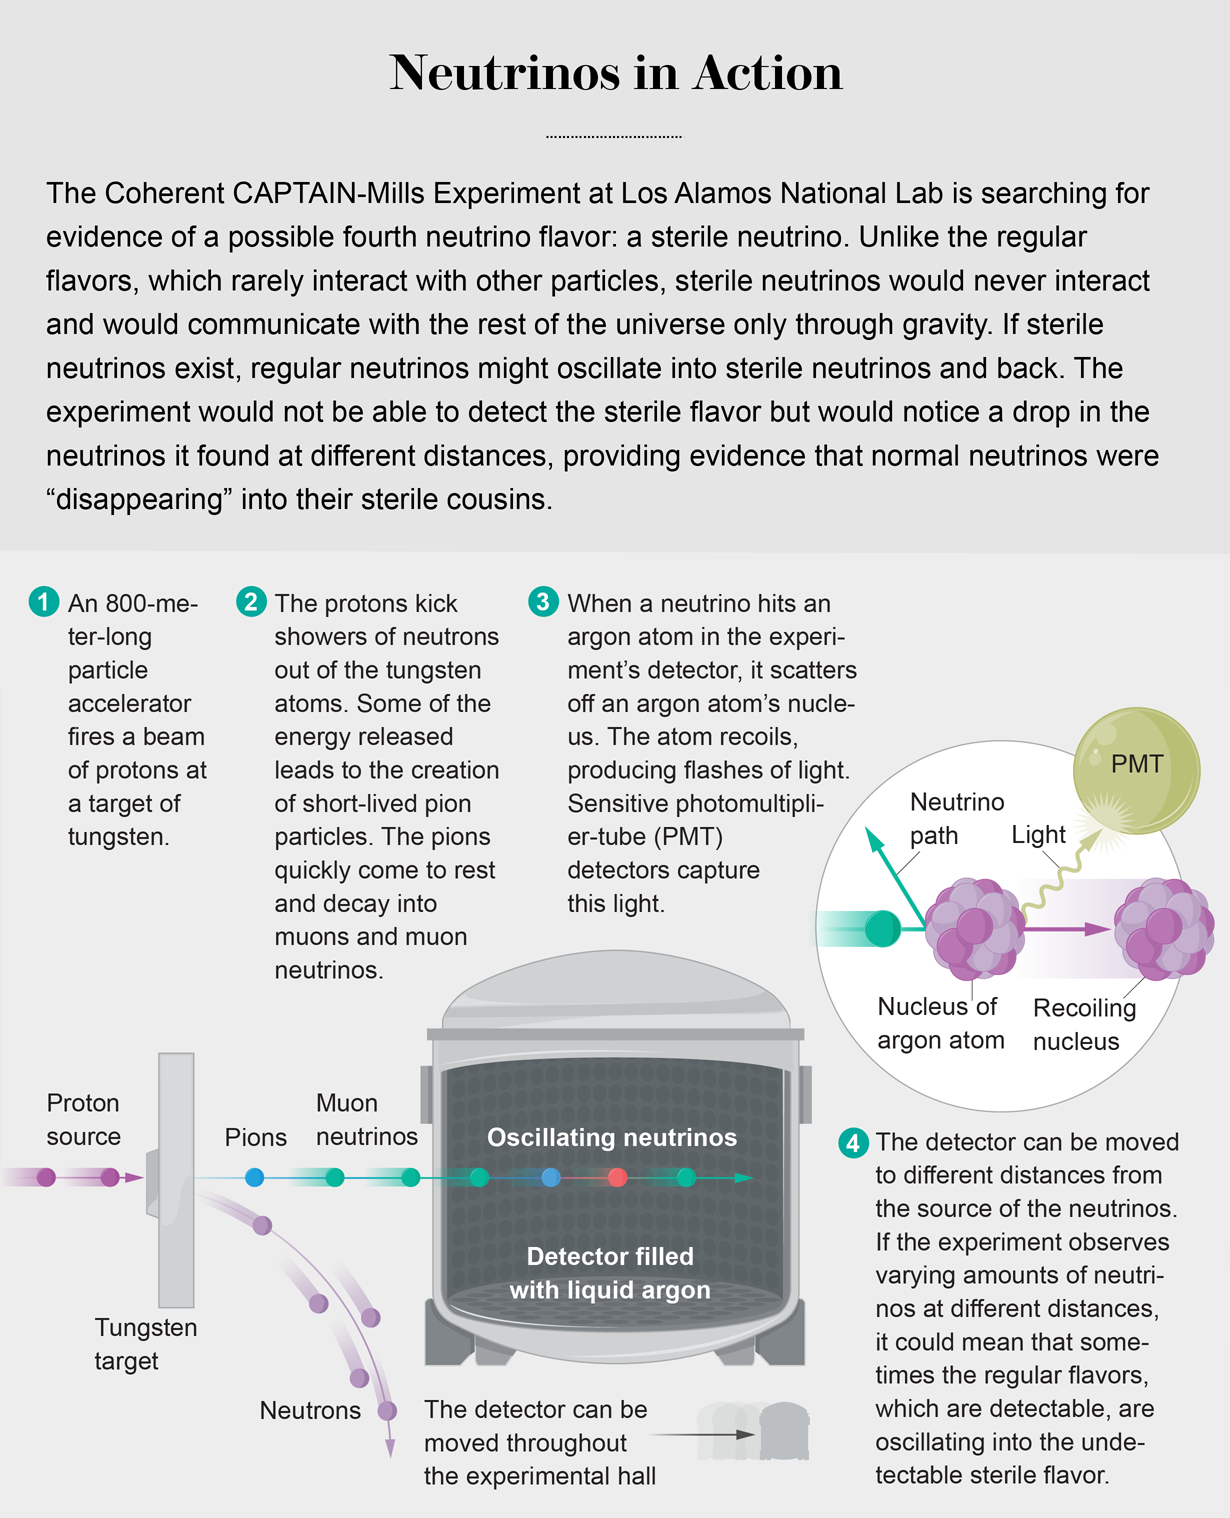 Coherent CAPTAIN-Mills Experiment at Los Alamos National Lab searches for sterile neutrinos